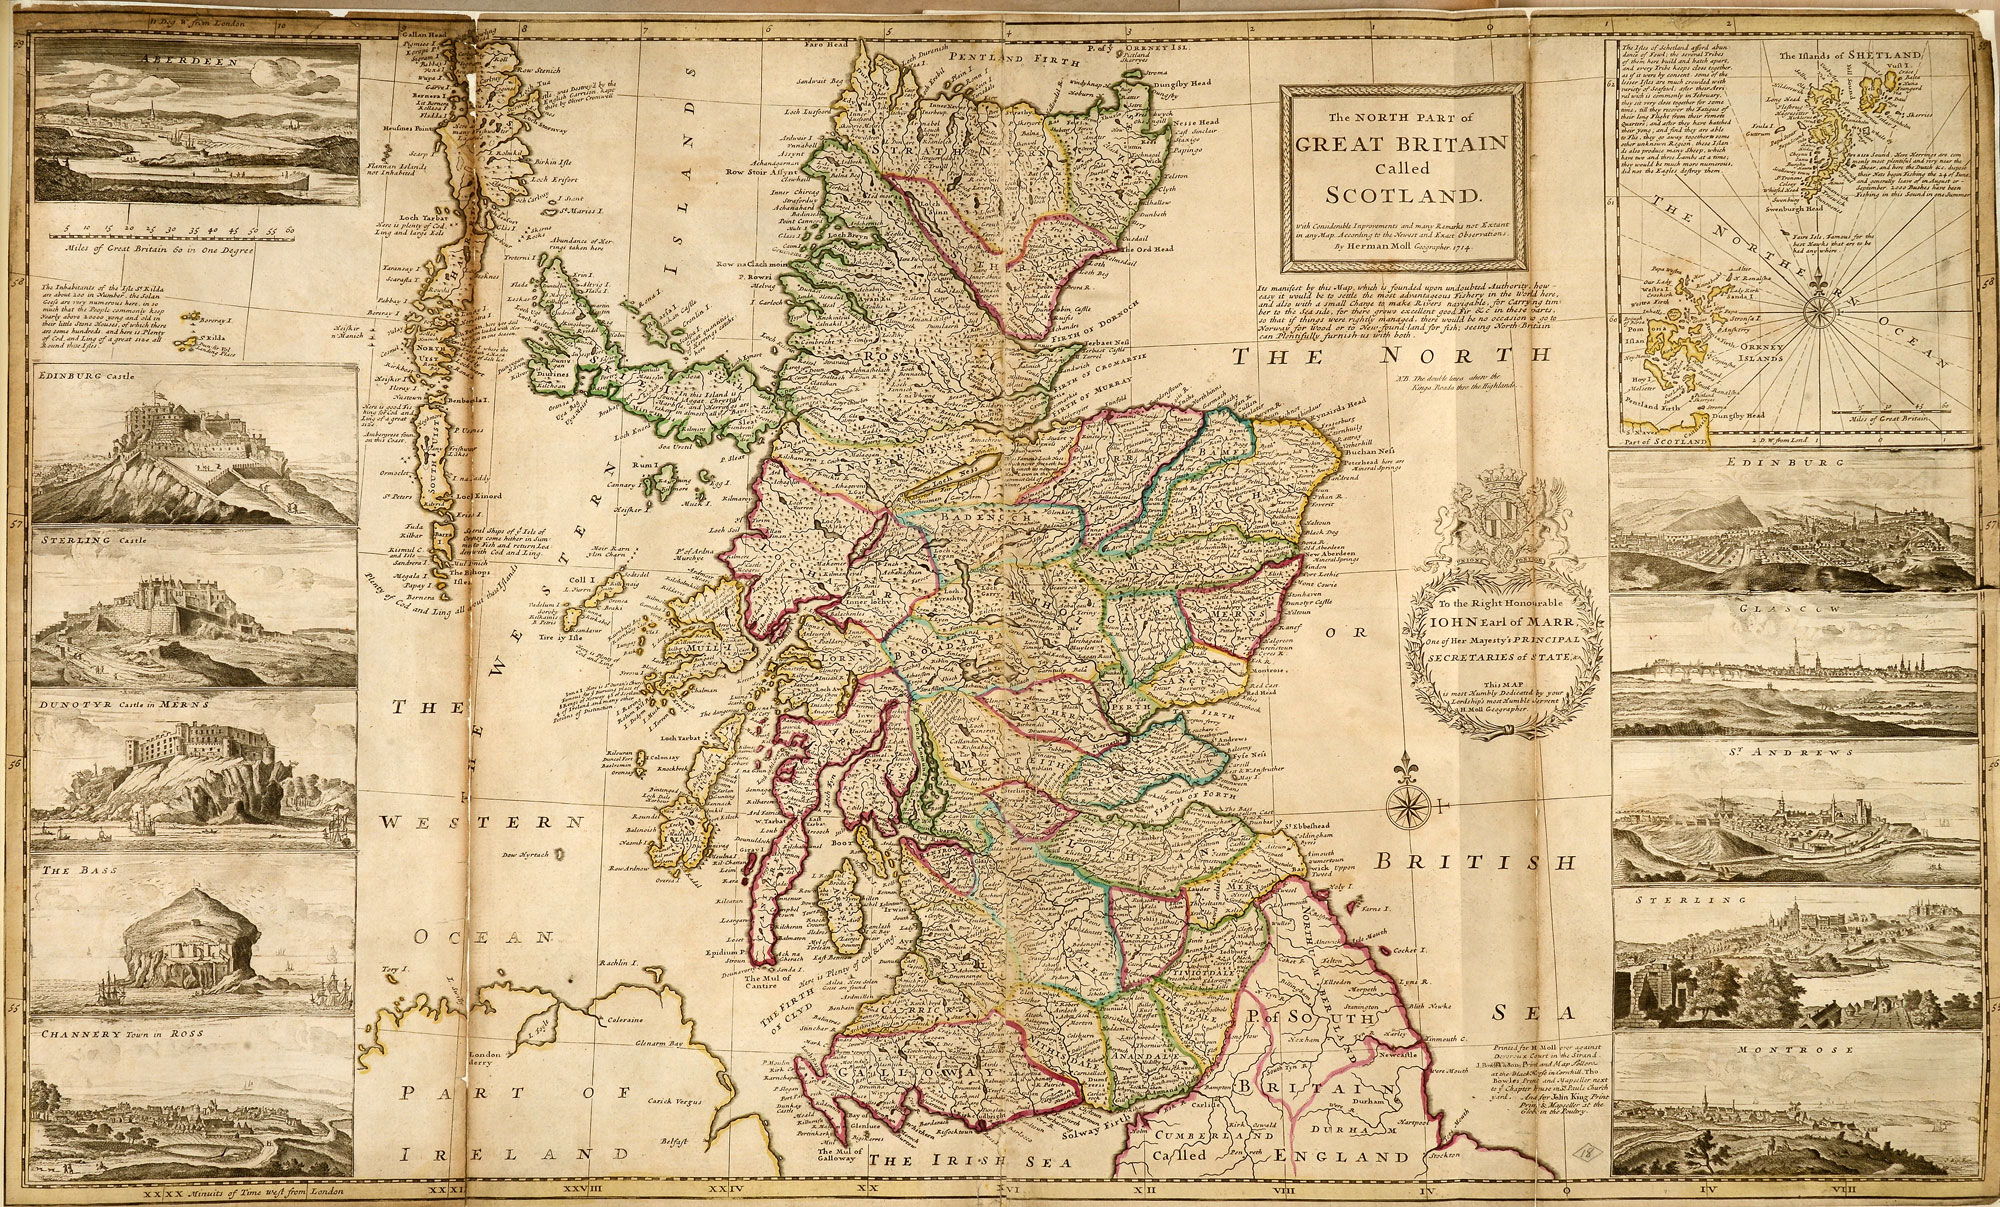 Map of Scotland by Herman Moll, geographer, 1714 (WO 78/419/18)